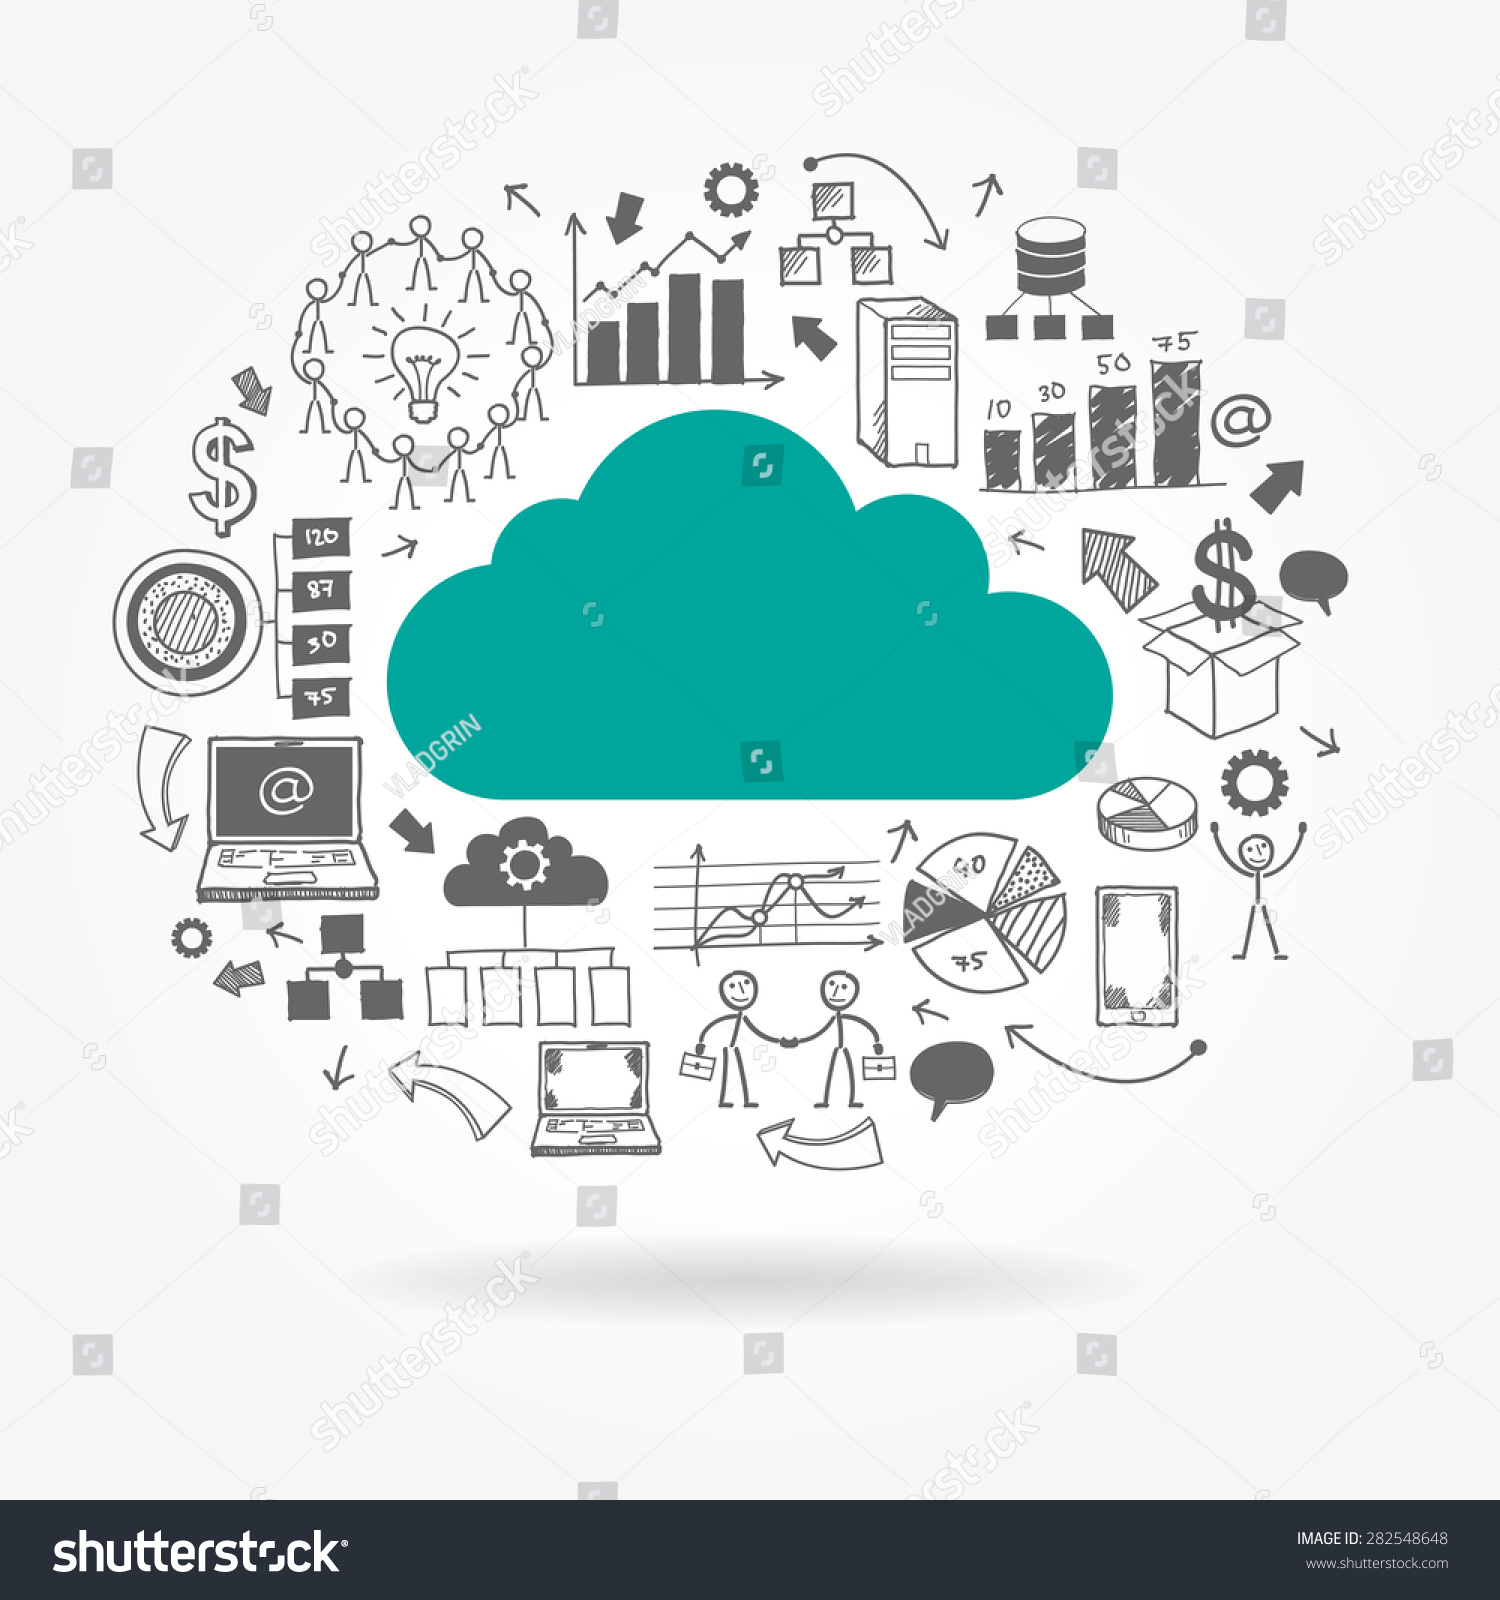 Flat Cloud Surrounded Doodle Business Icons Stock Vector 282548648 ...